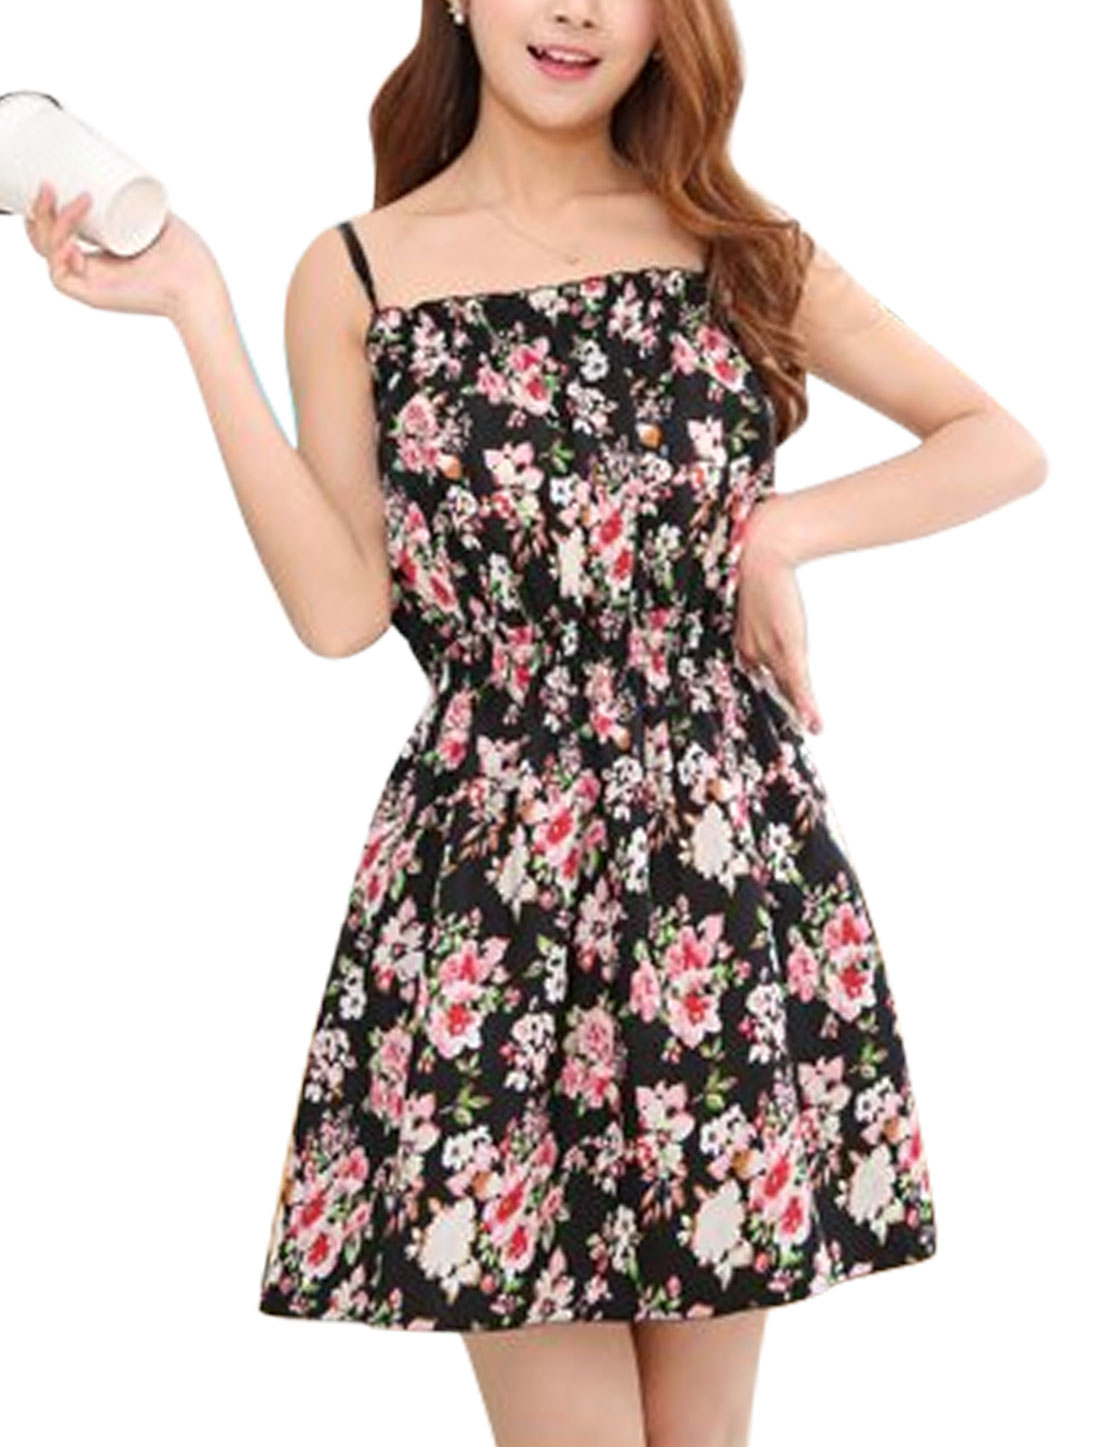 Women Sleeveless Flower Prints Elastic Waist Unlined A-Line Dresses Black XS